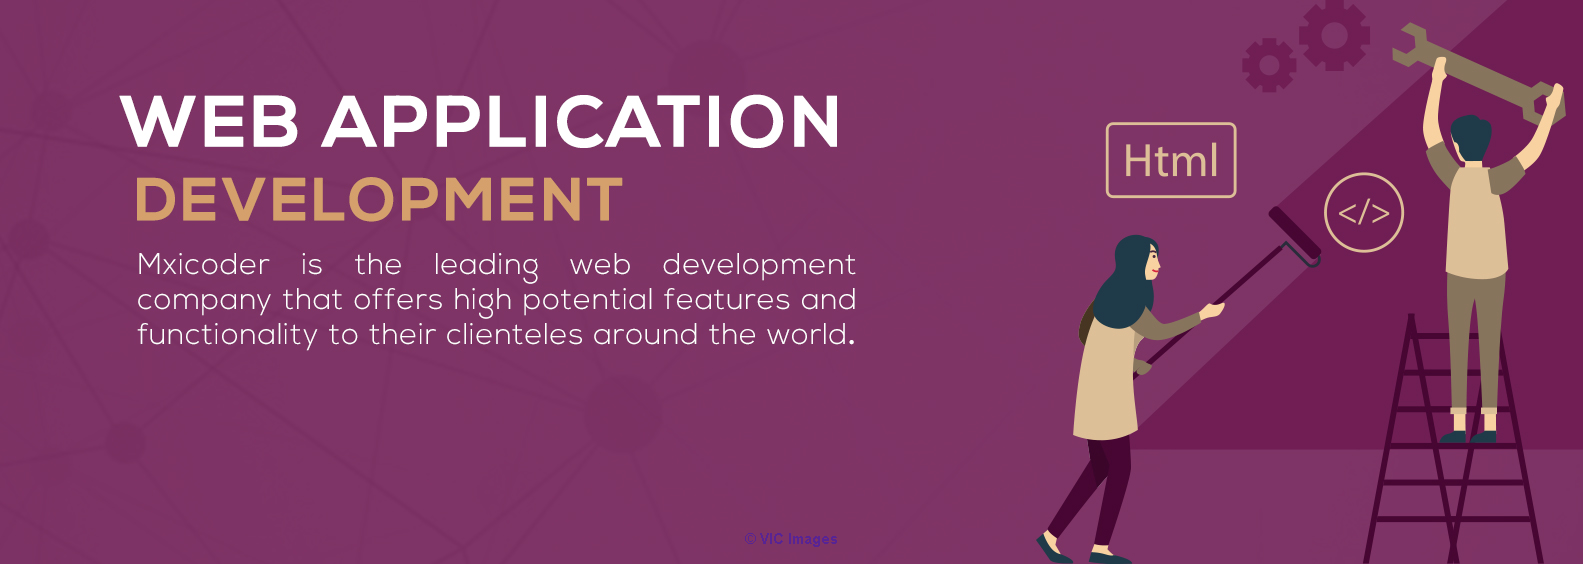 Best Web Application Development Platform | Commercial Web Application Calgary, Alberta, Canada Classifieds